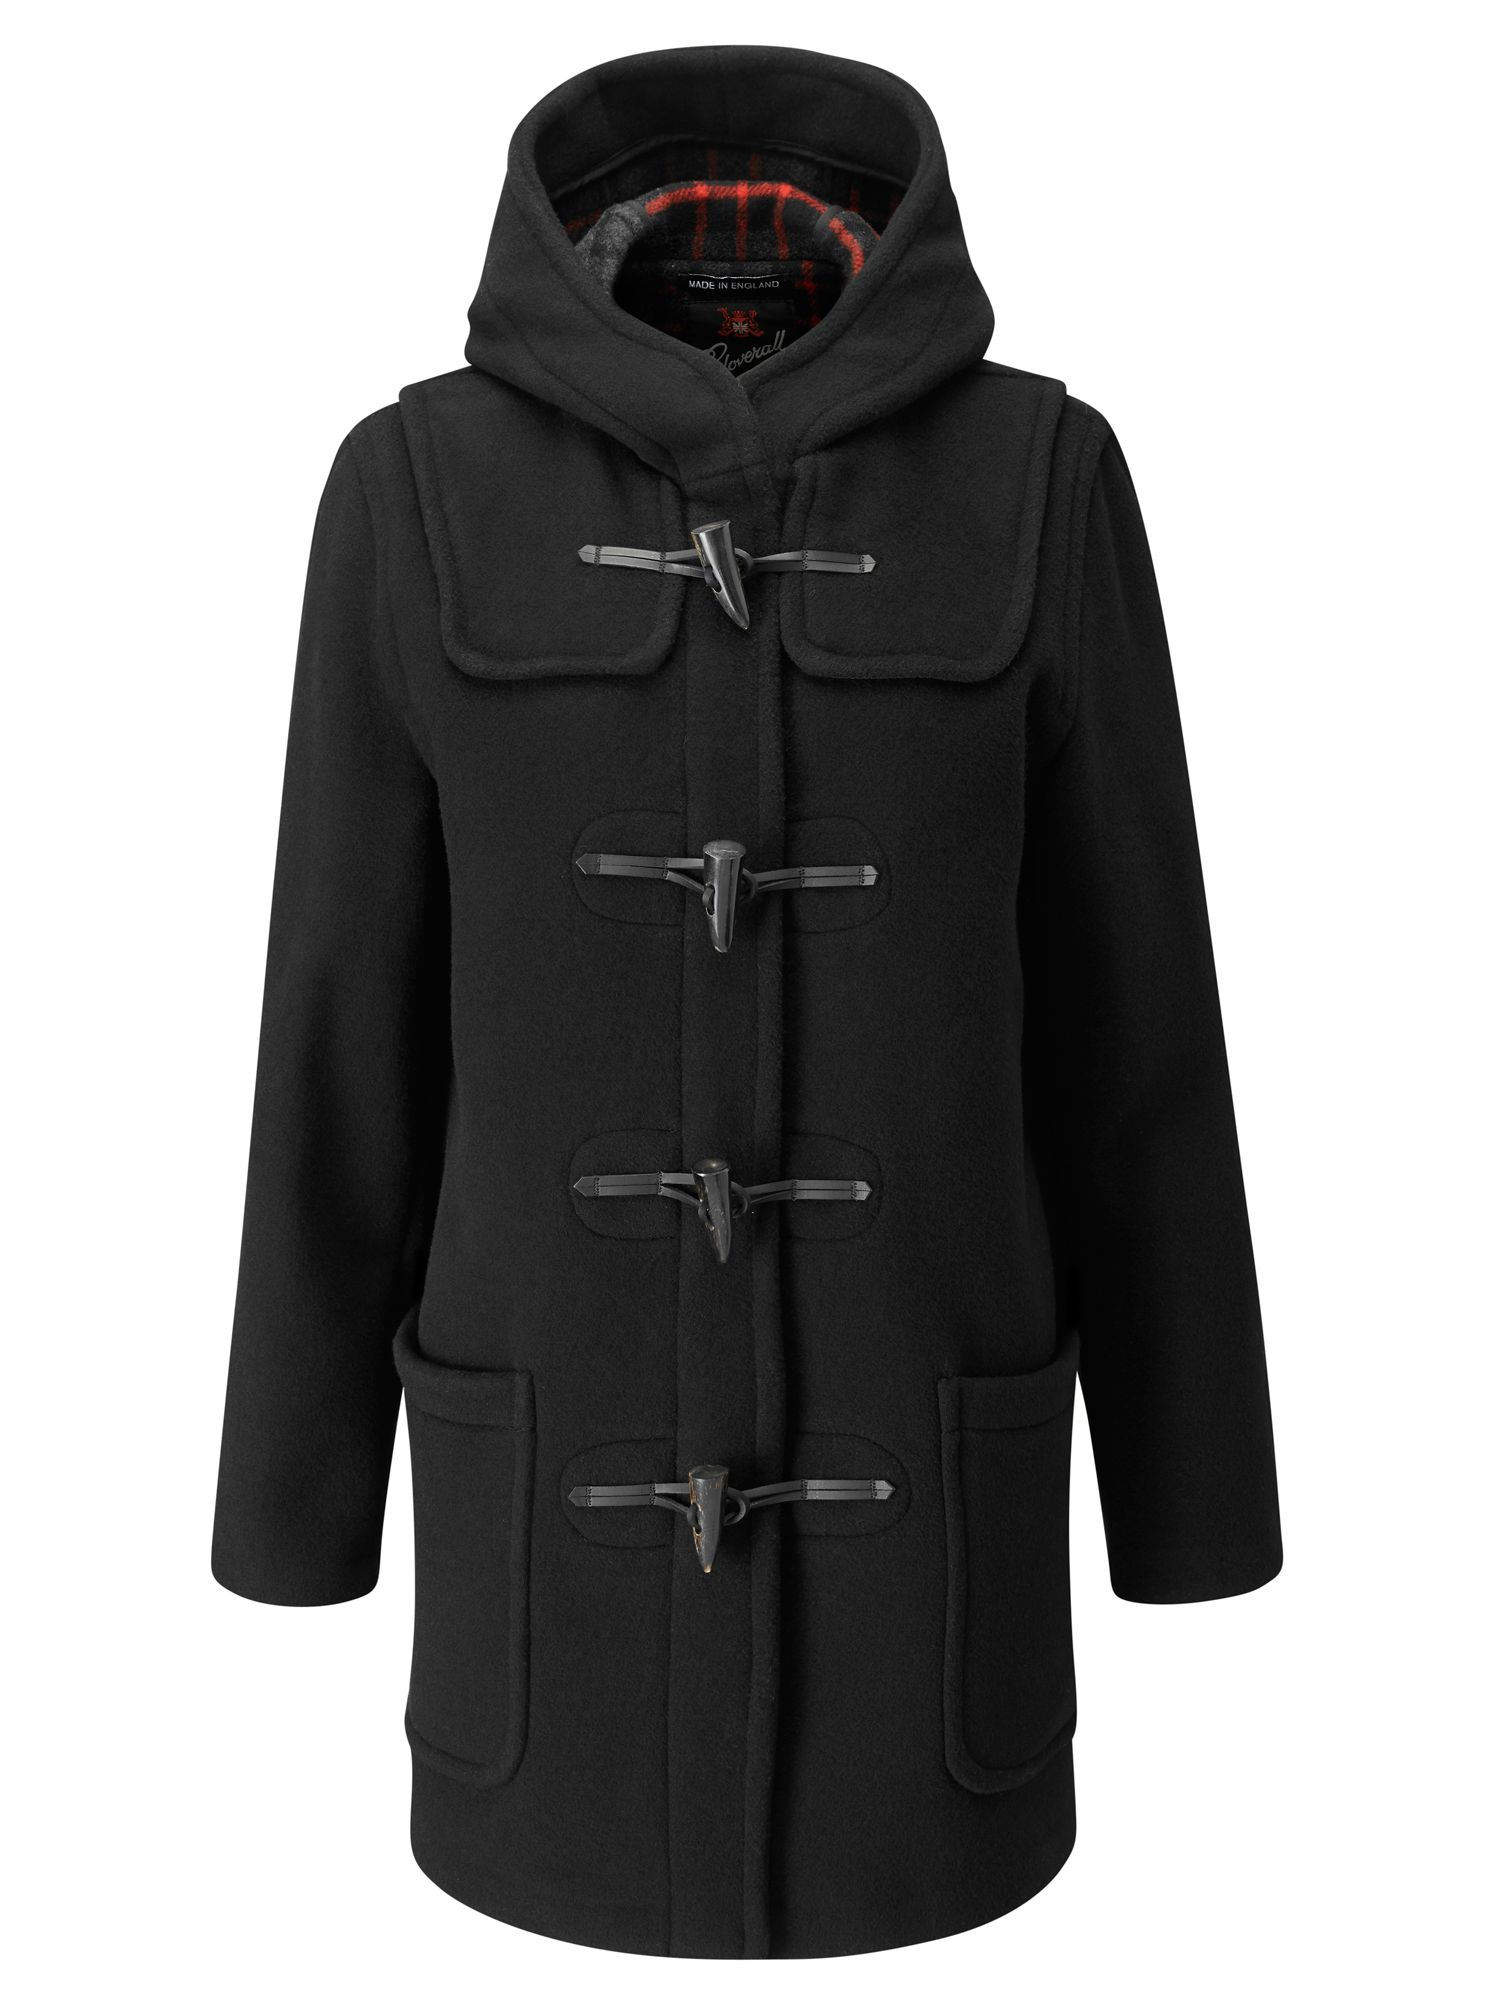 Gloverall Mid Length Original Fit Duffle Coat, Black